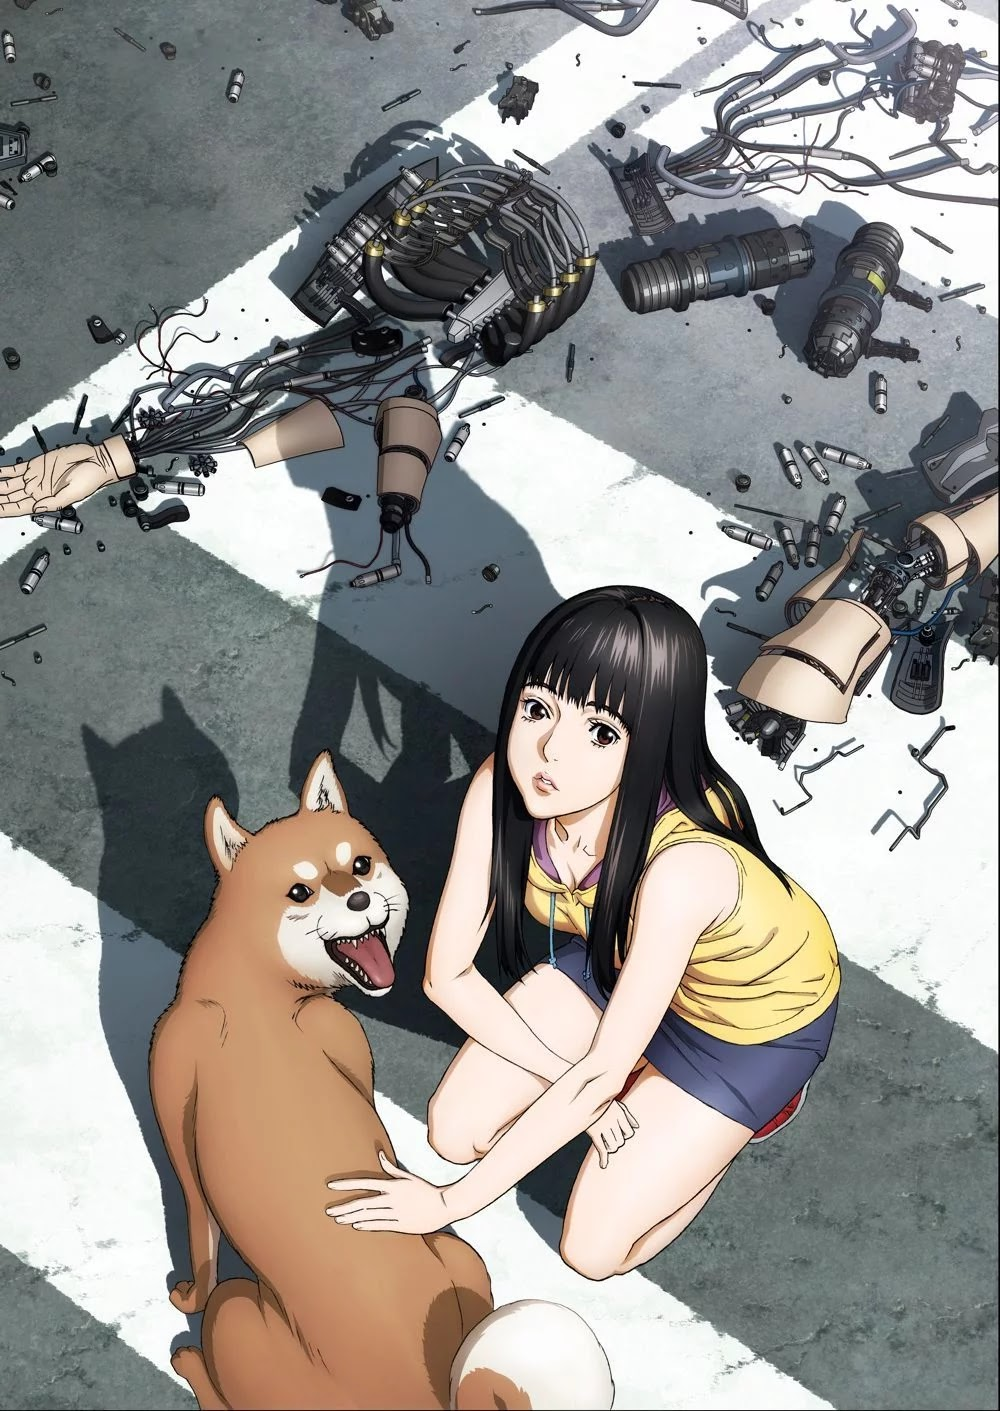 Inuyashiki Manga's Last Volume To B Released In September, And The Anime Adaptation In October.